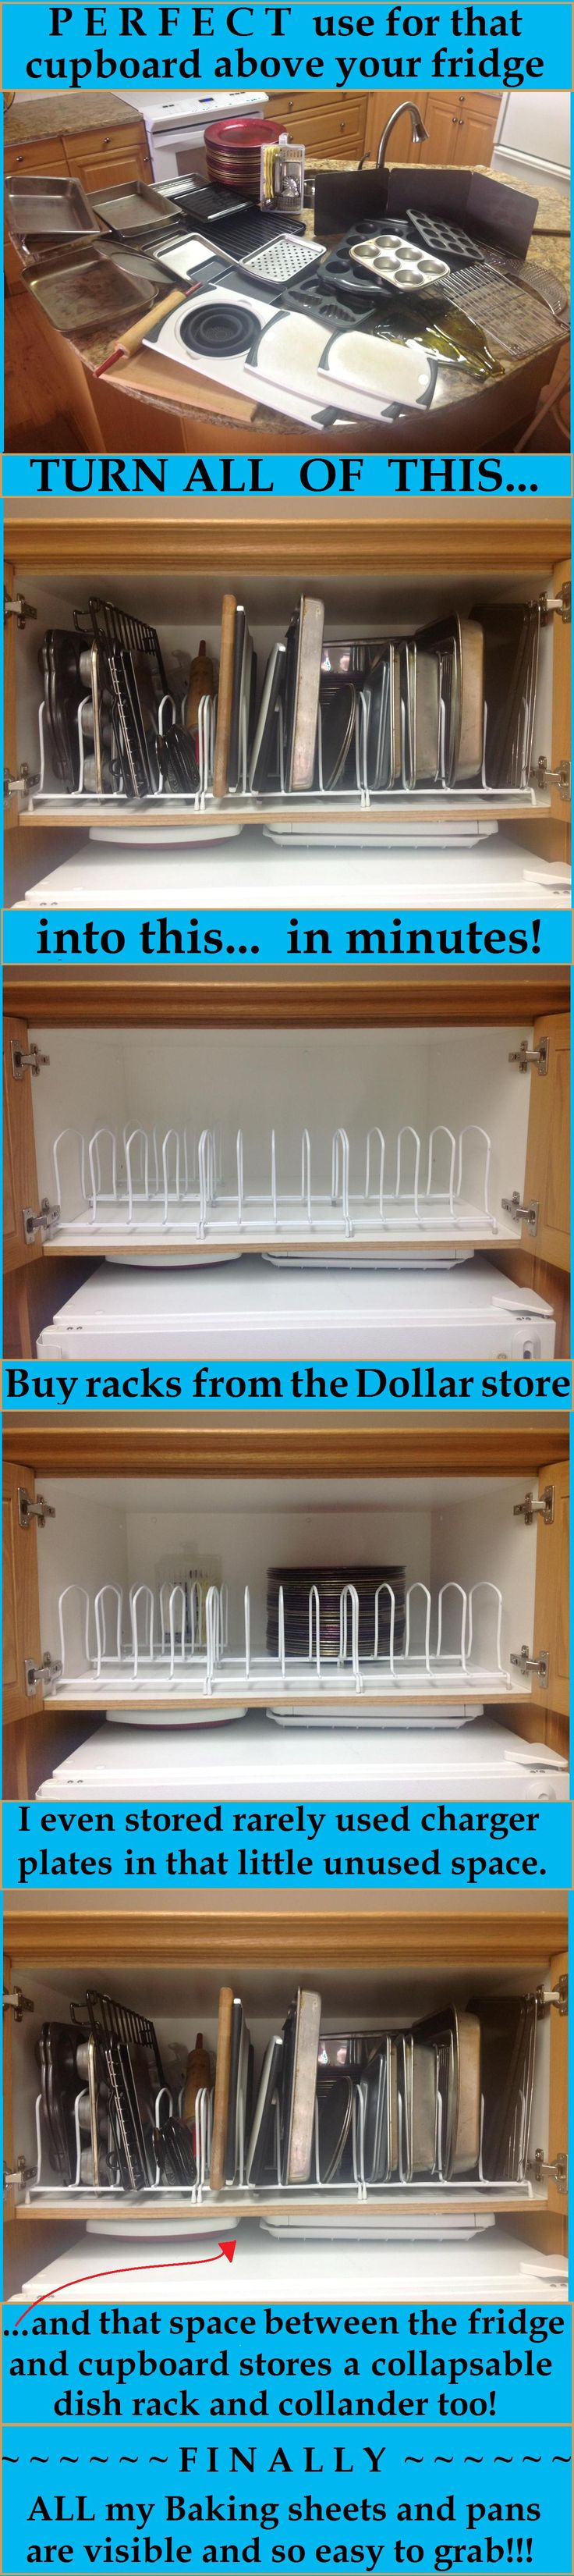 Home shop storage cabinets md stationary mesh security cabinet with - Dollar Store Dish Racks To Separate The Pans And Lids In A Cabinet Above The Fridge